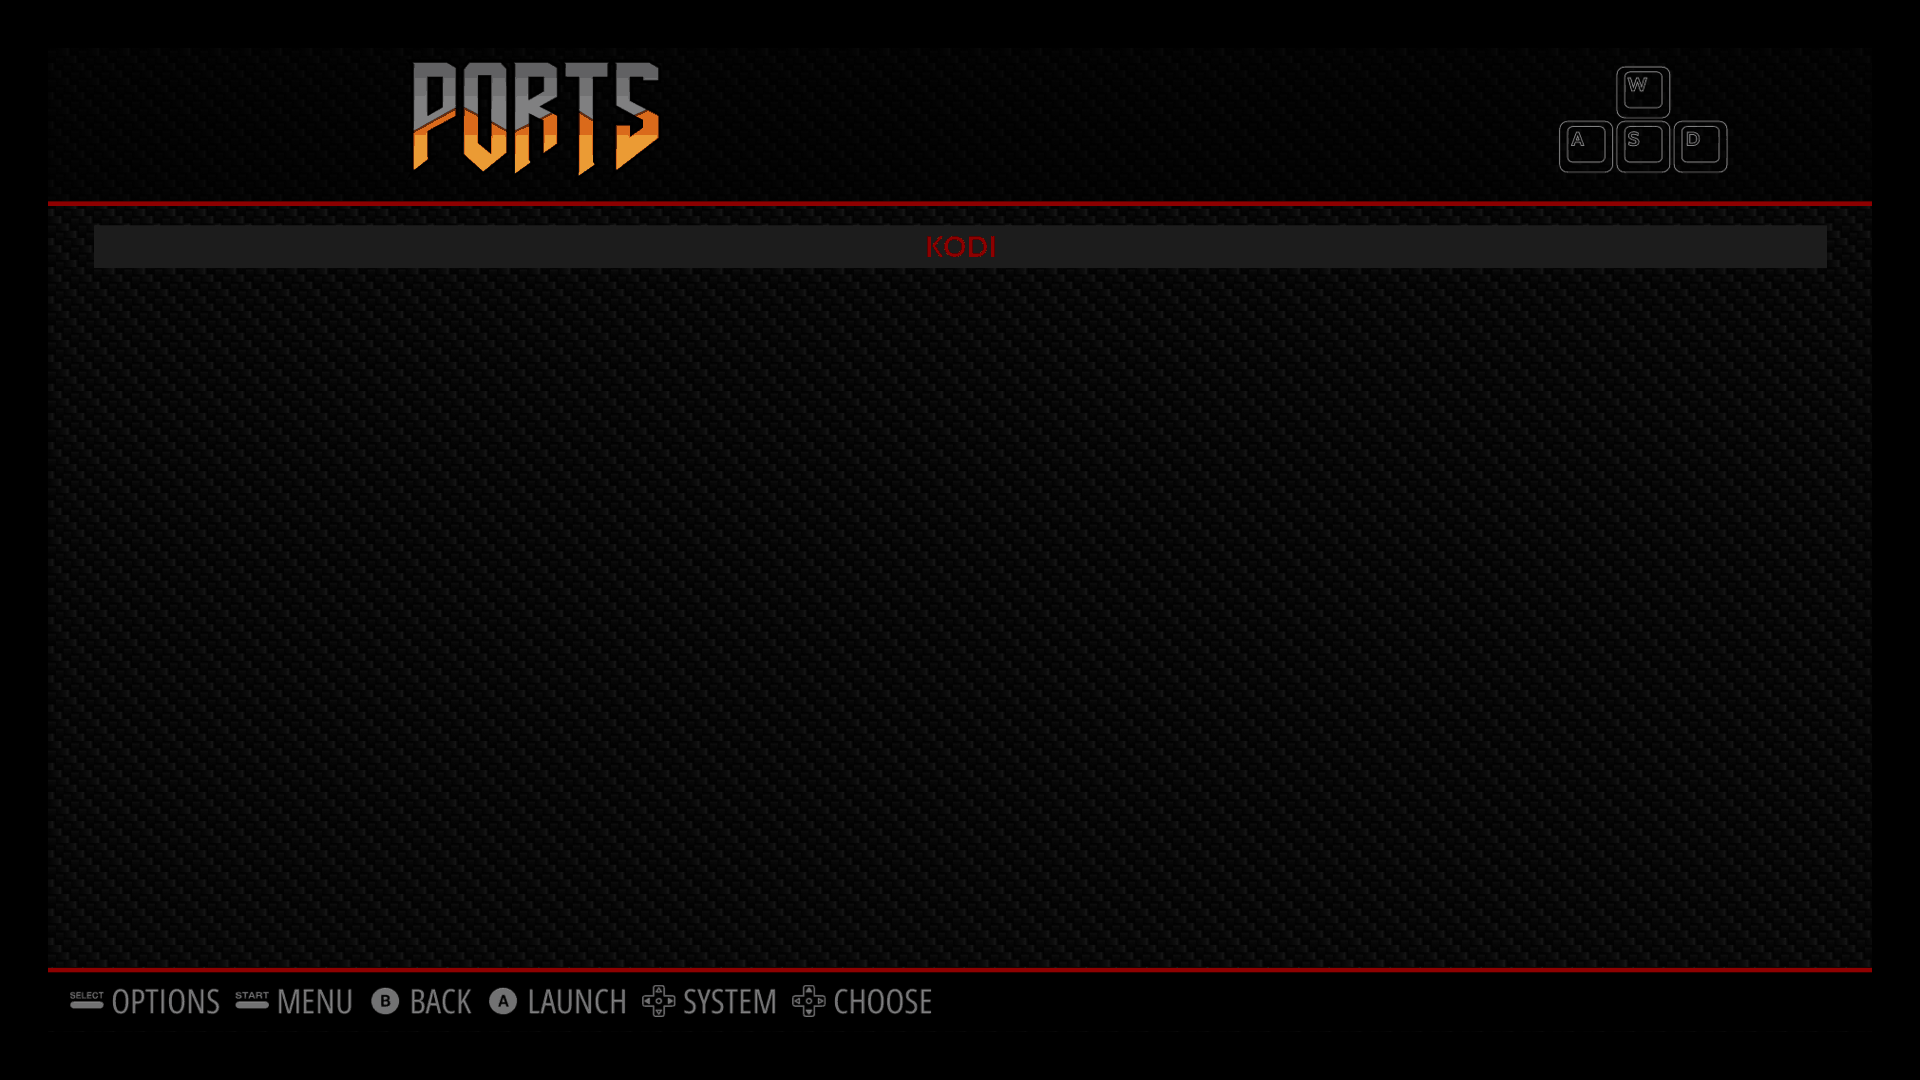 Kodi on RetroPie - Ports menu